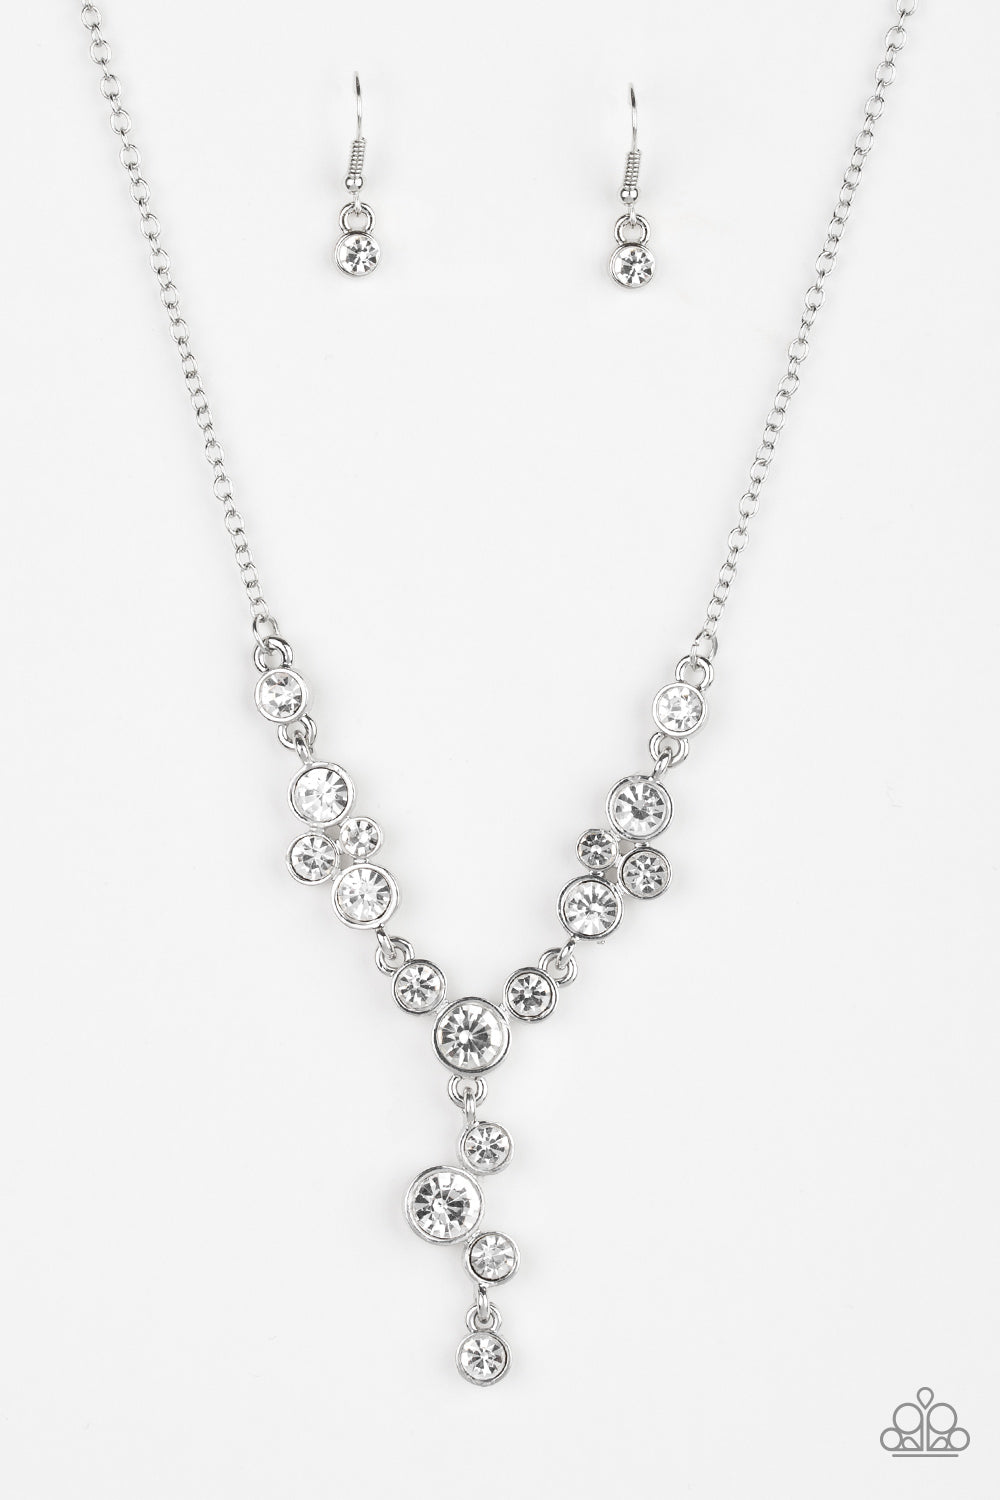 Five-Star Starlet - Paparazzi White Necklace - Be Adored Jewelry